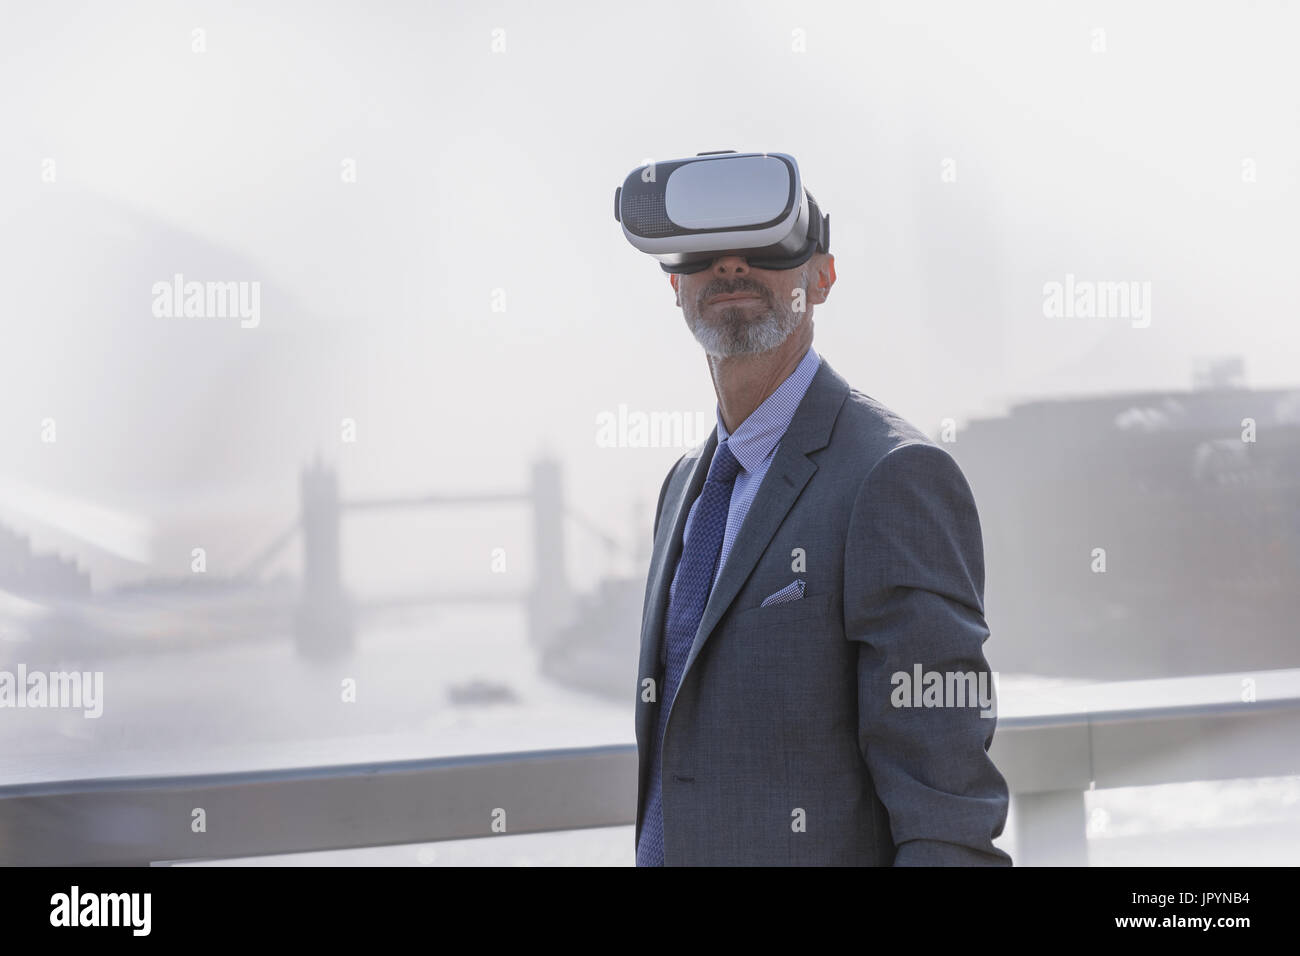 Businessman using virtual reality simulator glasses on sunny urban bridge over Thames River, London, UK - Stock Image